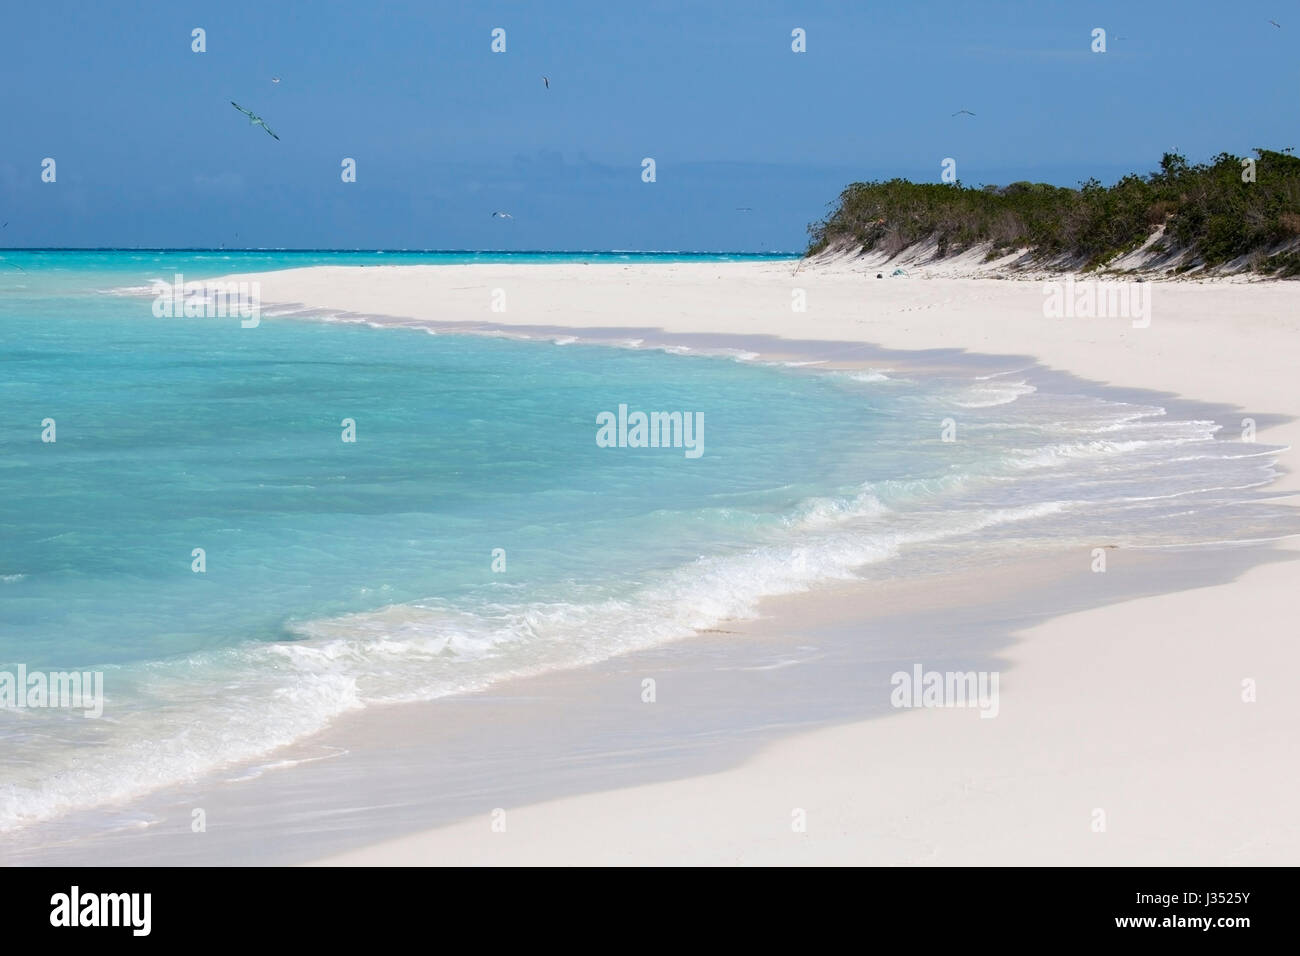 Midway Atoll island and lagoon in Papahanaumokuakea Marine National Monument - Stock Image